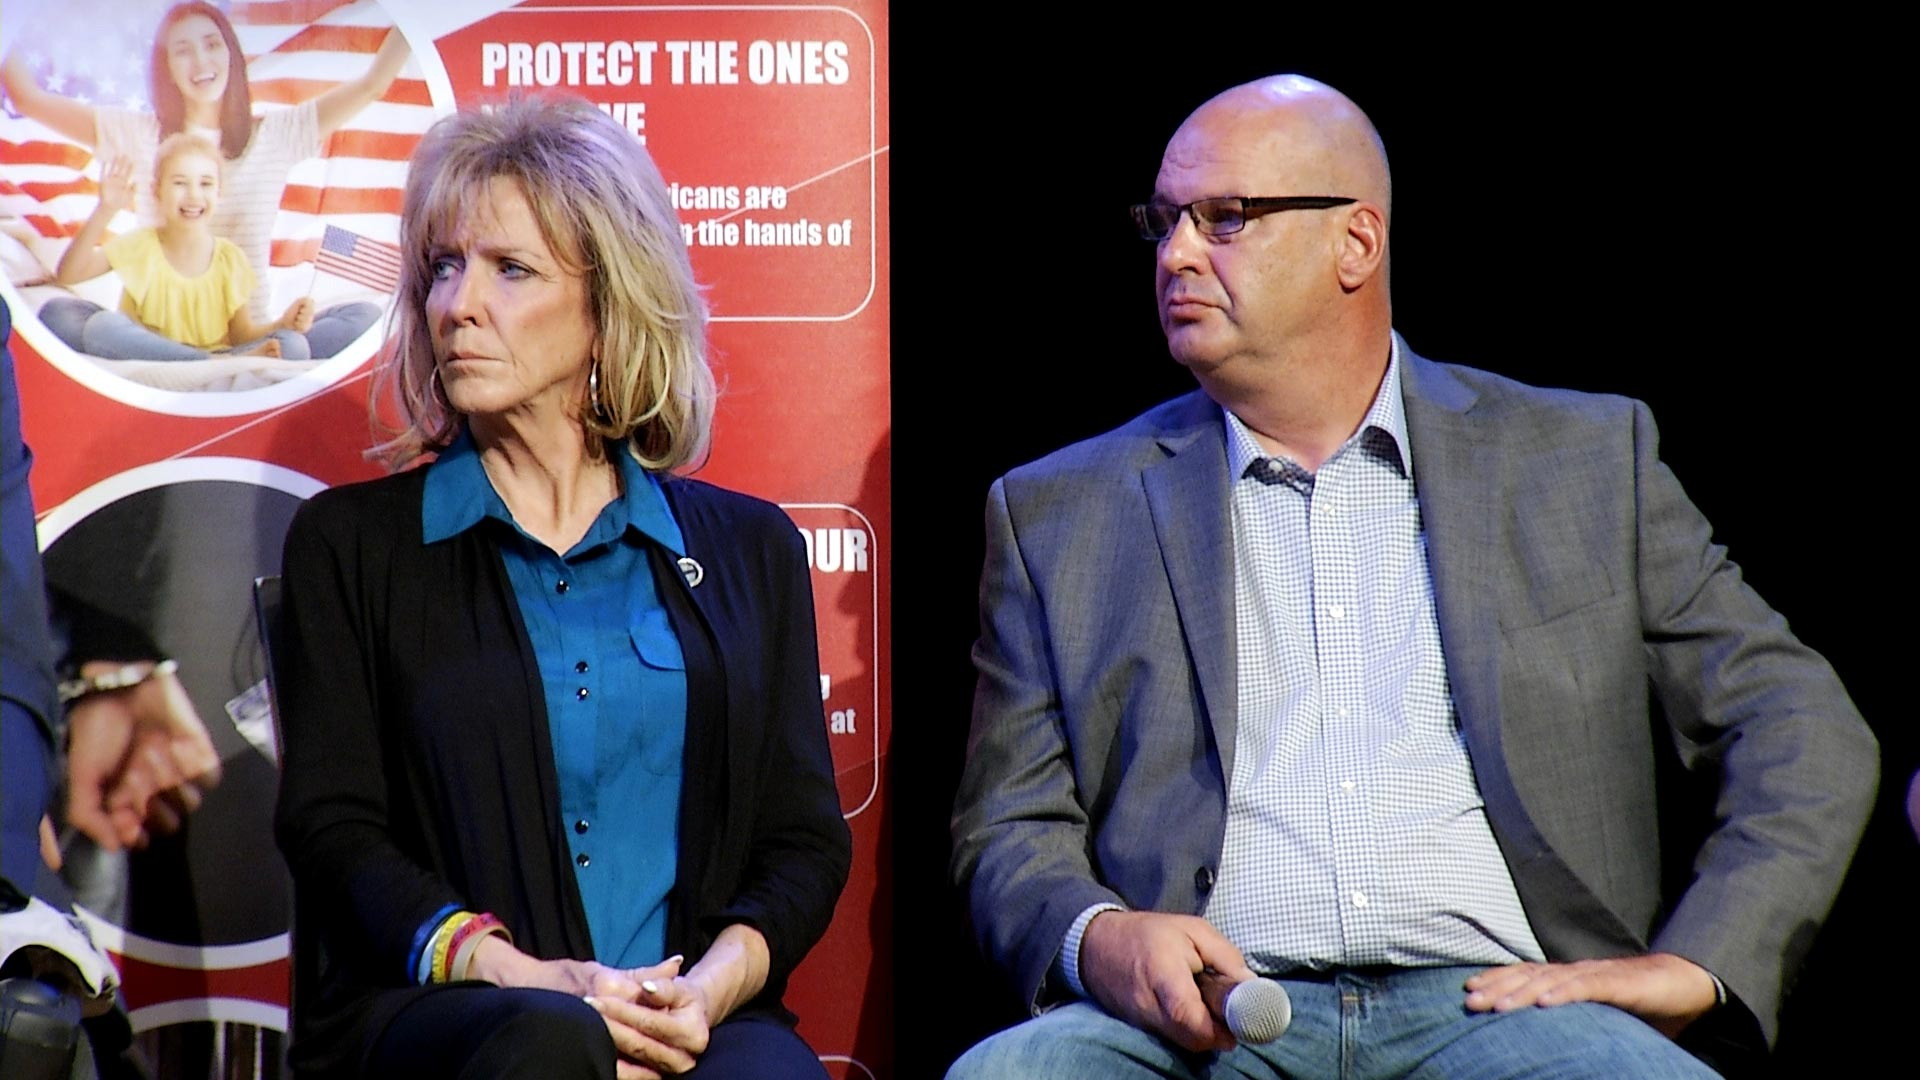 Mary Ann Mendoza and Steve Ronnebeck participate in a town hall event for the We Build the Wall organization hosted by the Quail Creek Republicans in Sahuarita on February 8, 2019. Mendoza and Ronnebeck are the parents of two men killed in separate instances by immigrants in the country illegally.